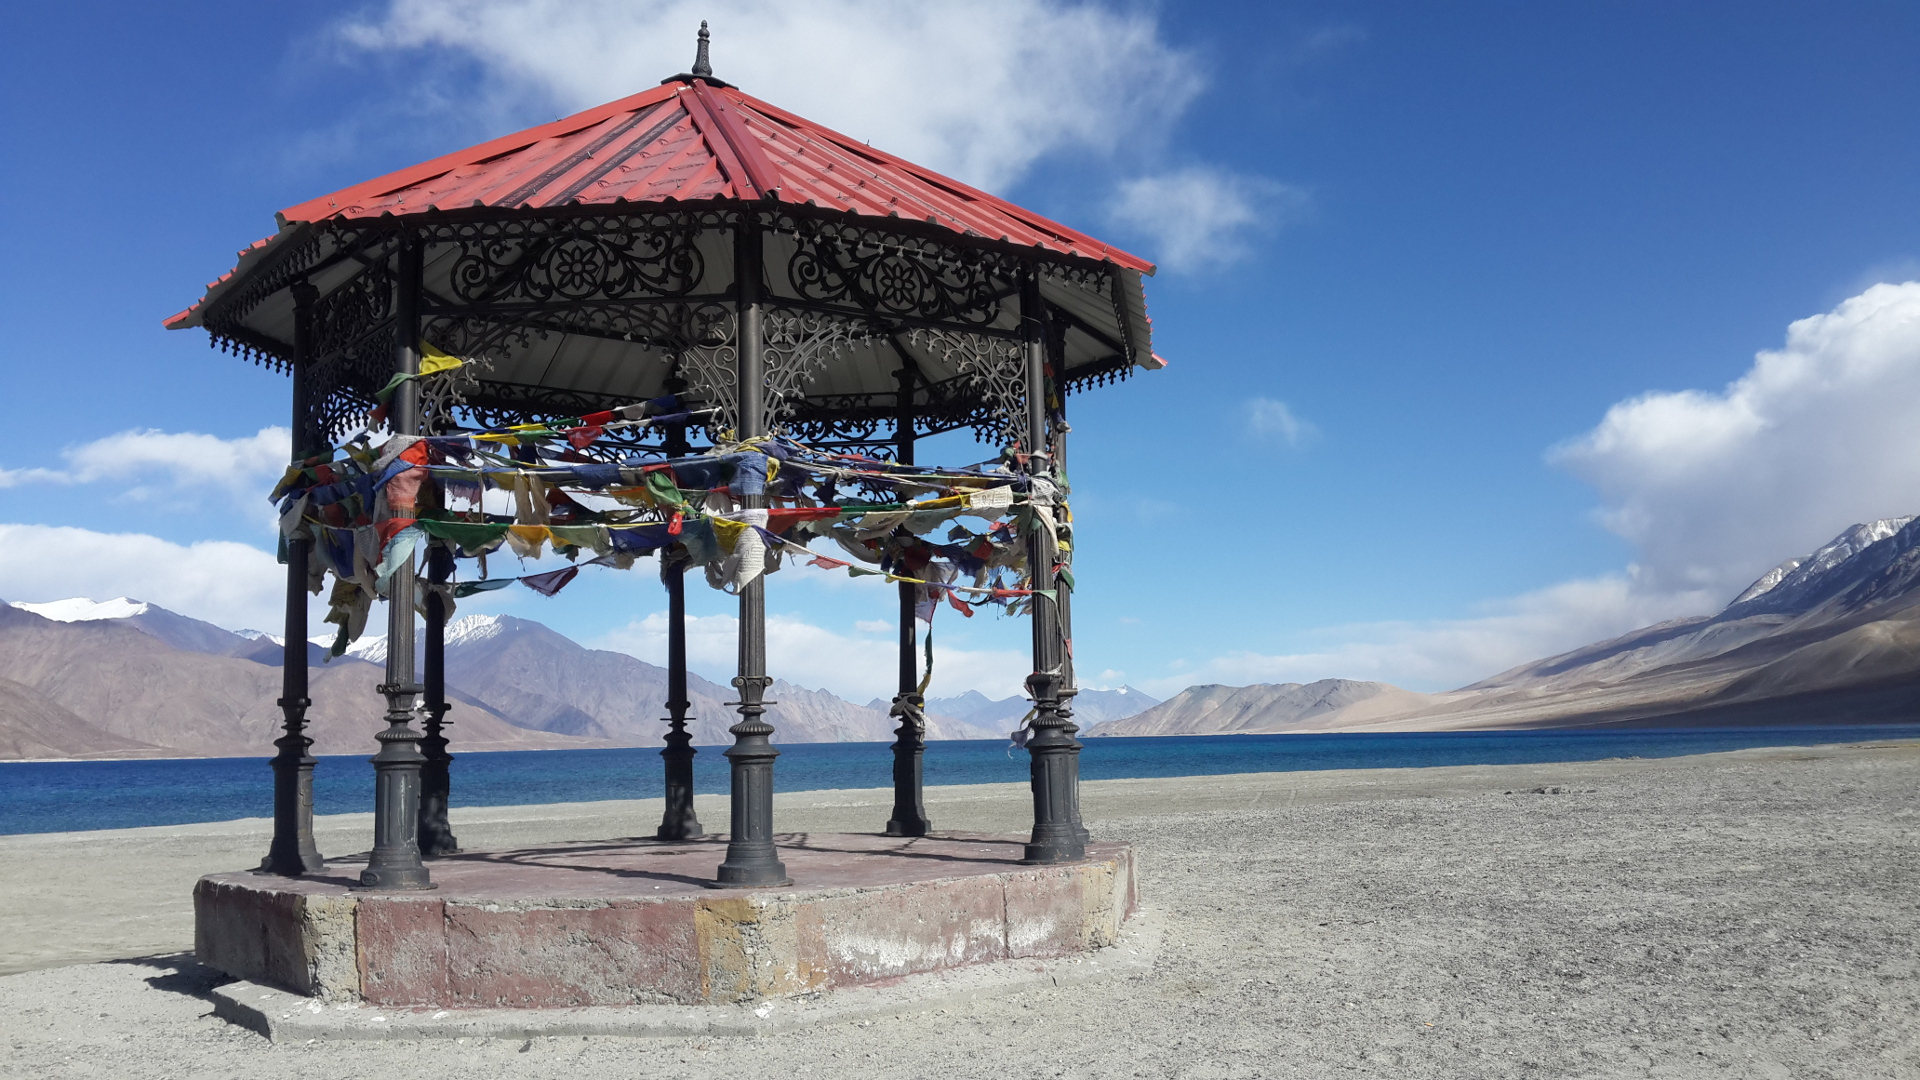 pangong-lake-pavillon_hd